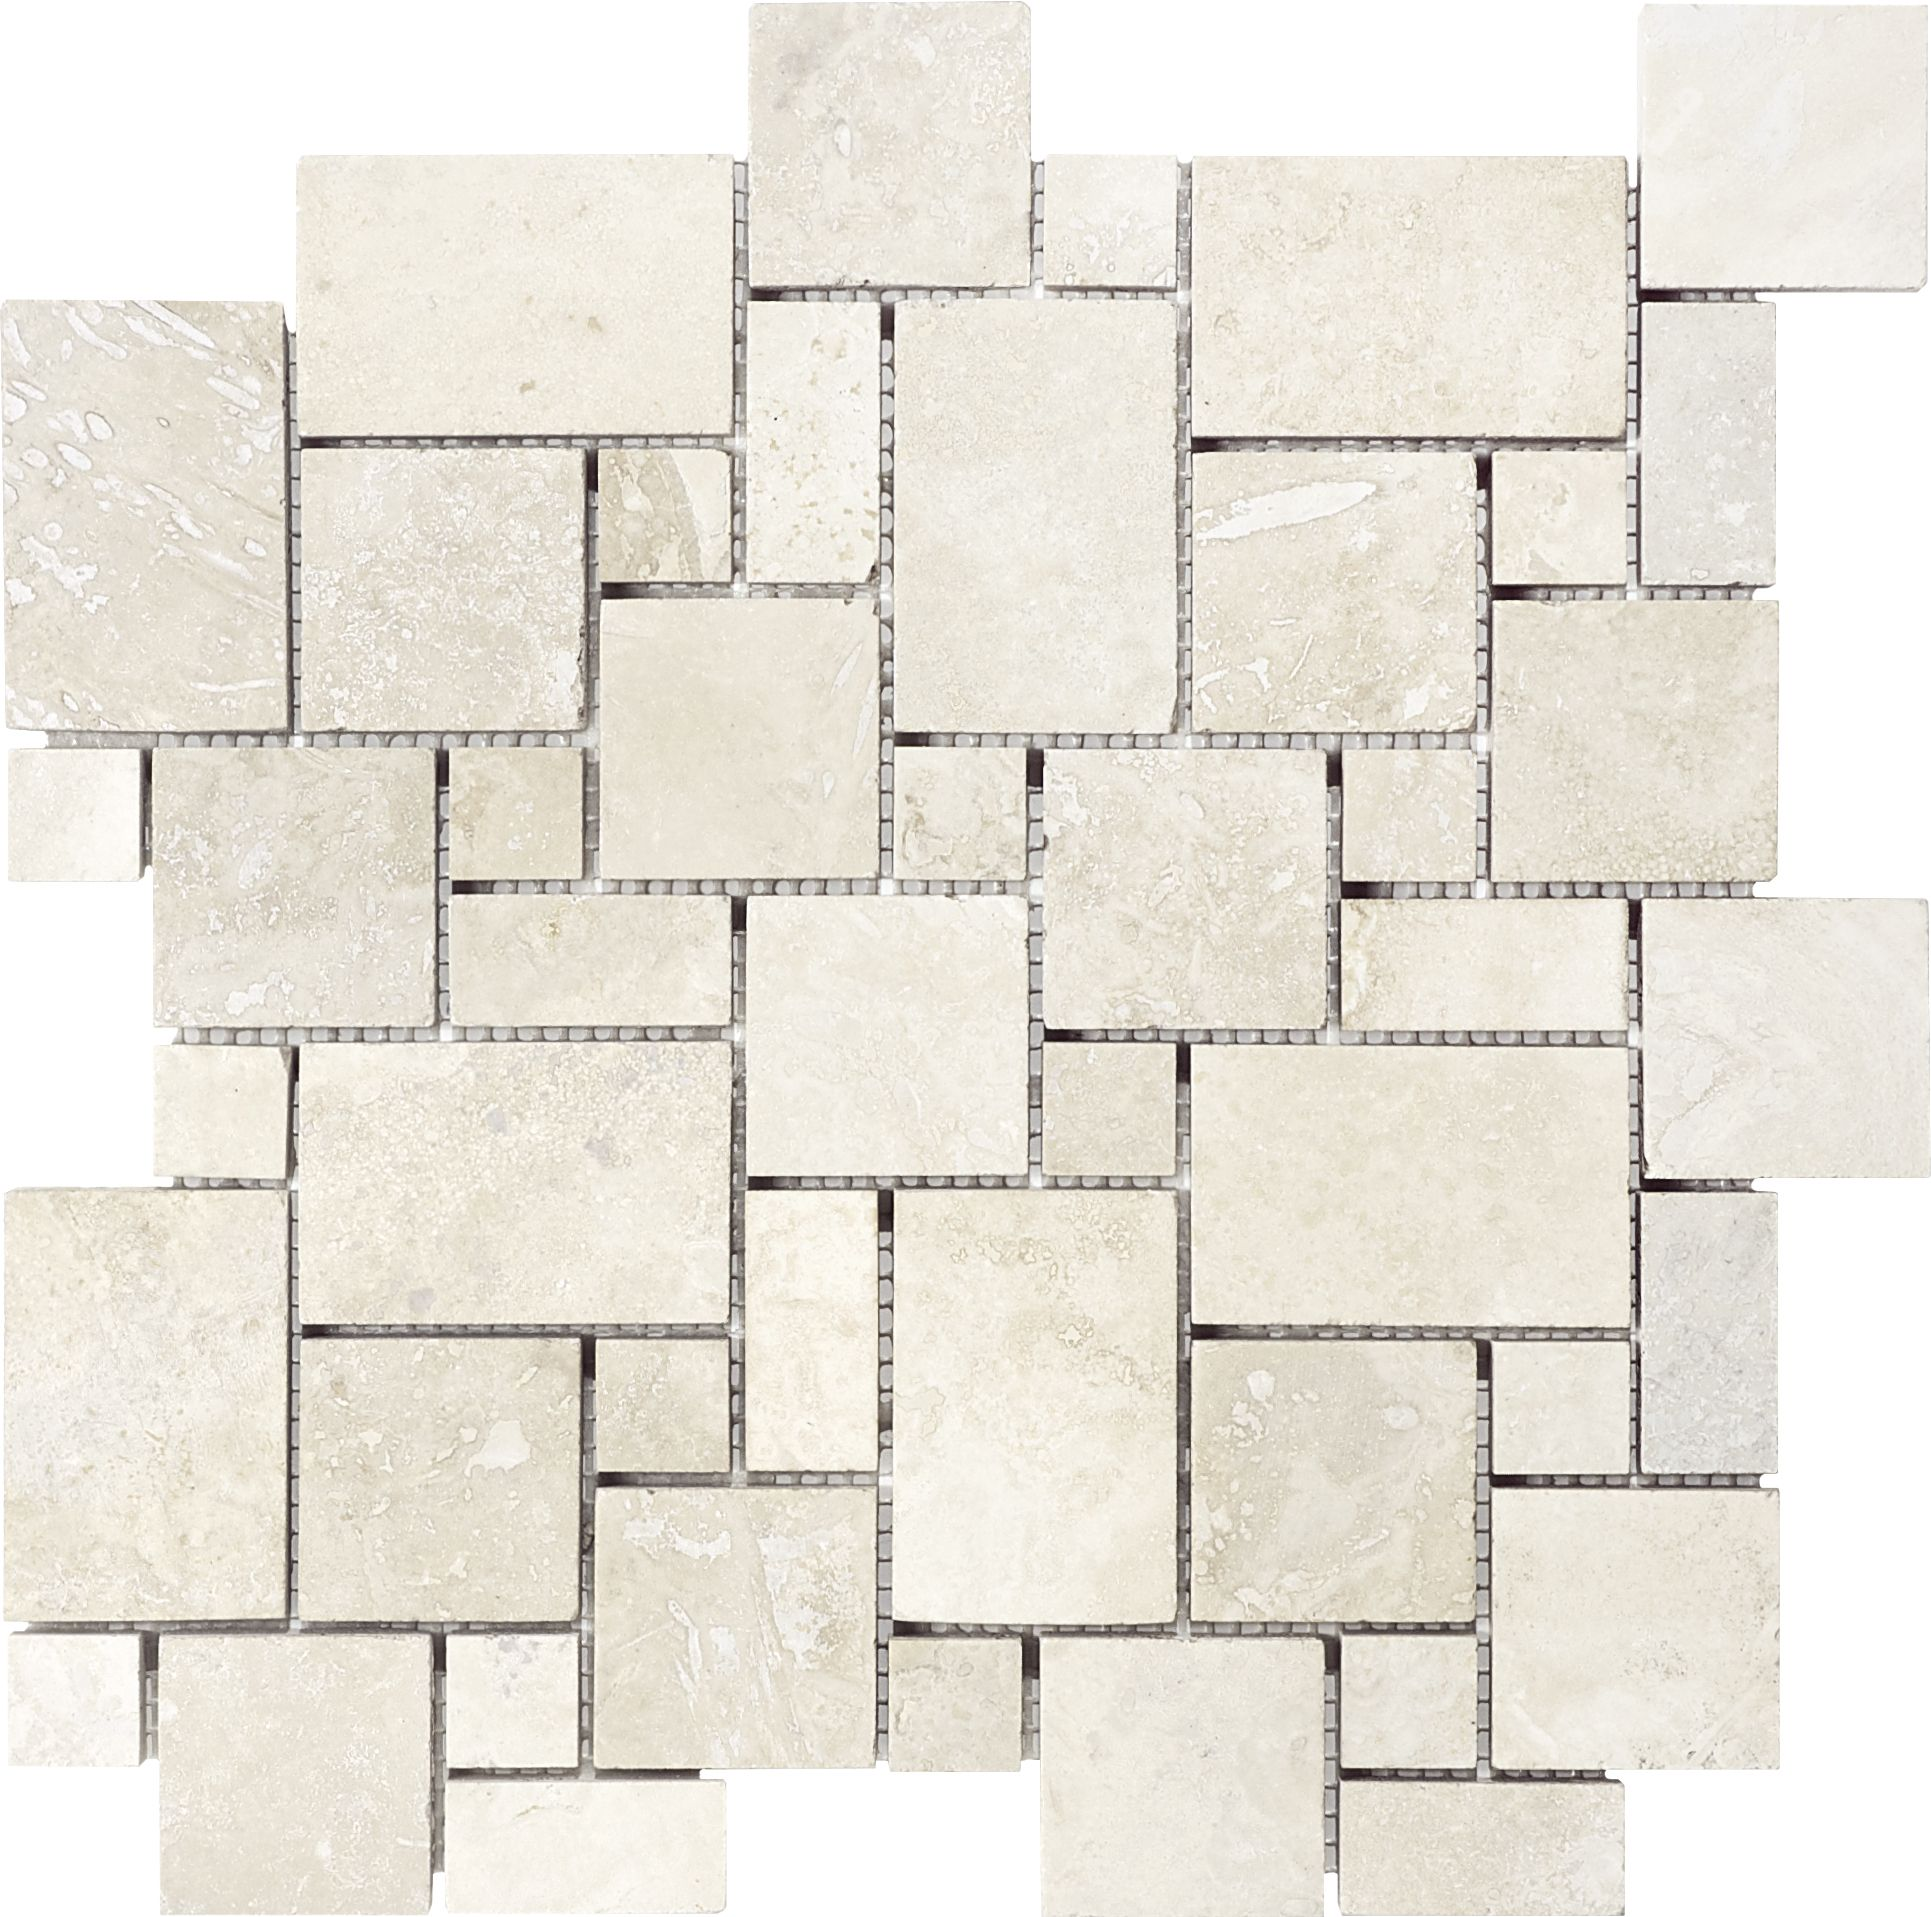 Anatolia Tile Chiaro Filled And Honed 12 In X 12 In Honed And Filled Natural Stone Travertine Versailles Mosaic Wall Tile Lowes Com Travertine Wall Tiles Travertine Mosaic Tiles Mosaic Flooring